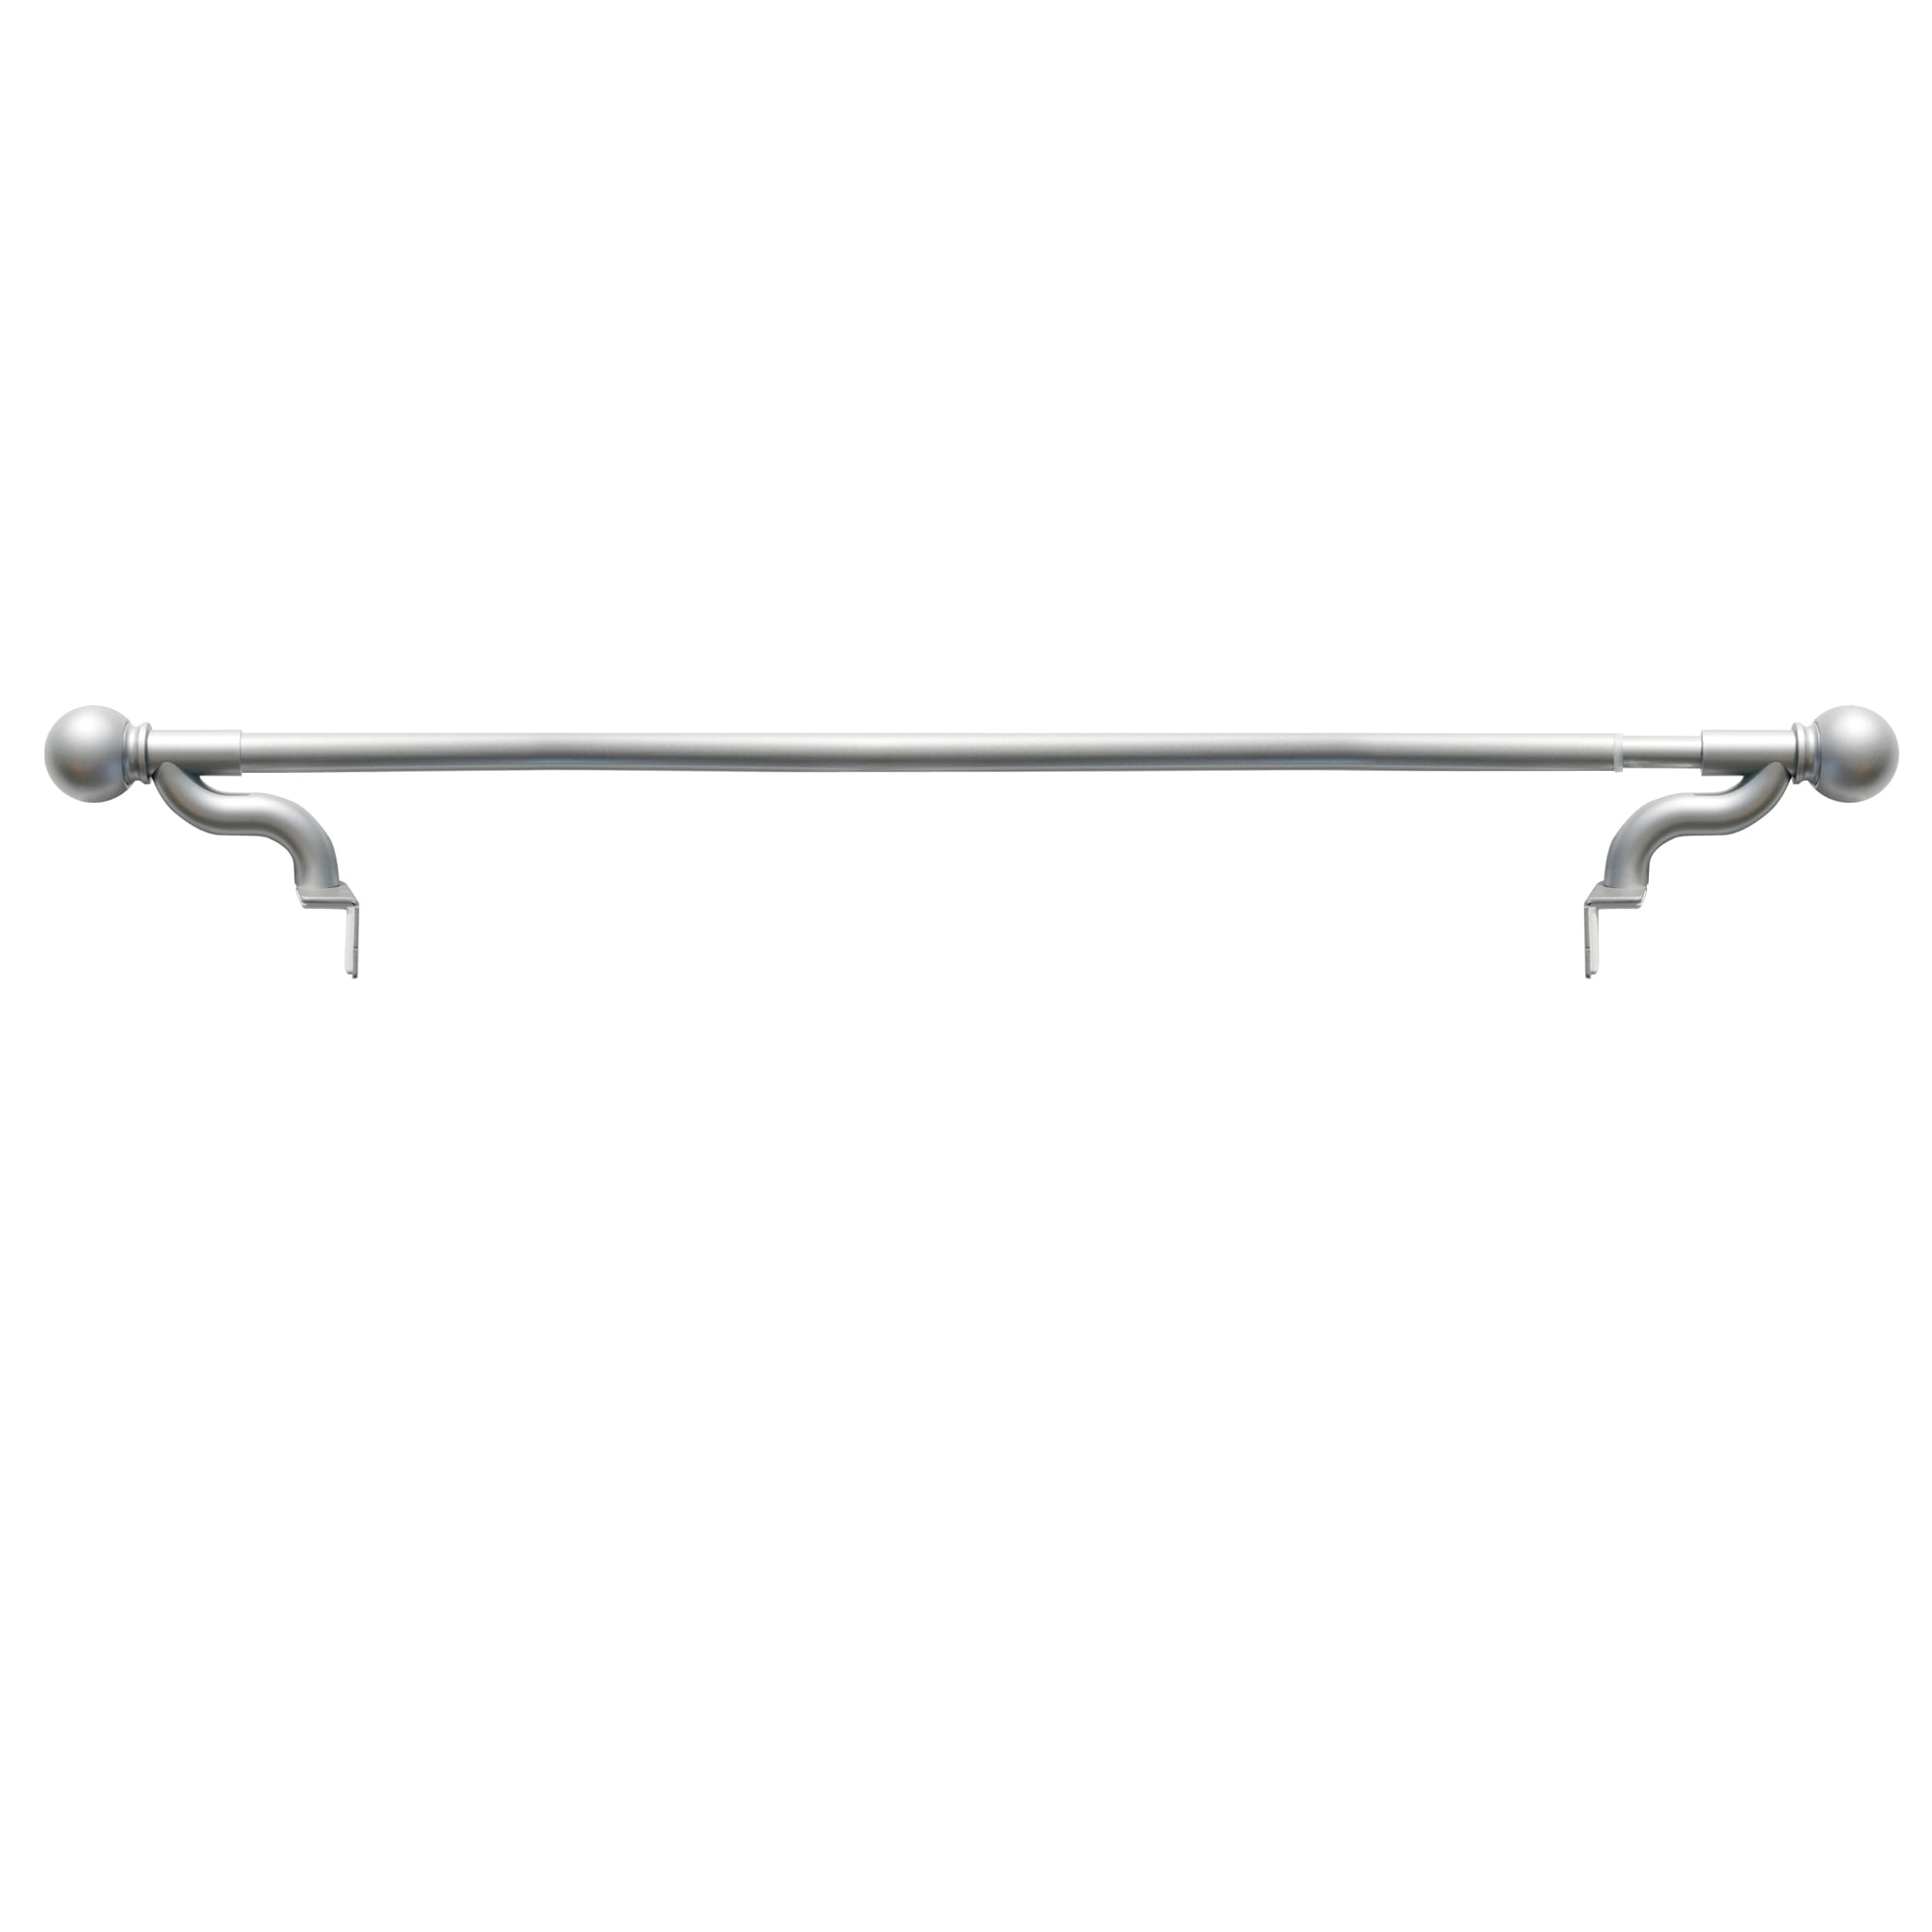 HabiLife Tension Curtain Rod 50-81 inches Never Rust Non-Slip Spring Tension Curtain Rod No Drilling Stainless Steel Curtain Rod Use Bathroom Kitchen Home